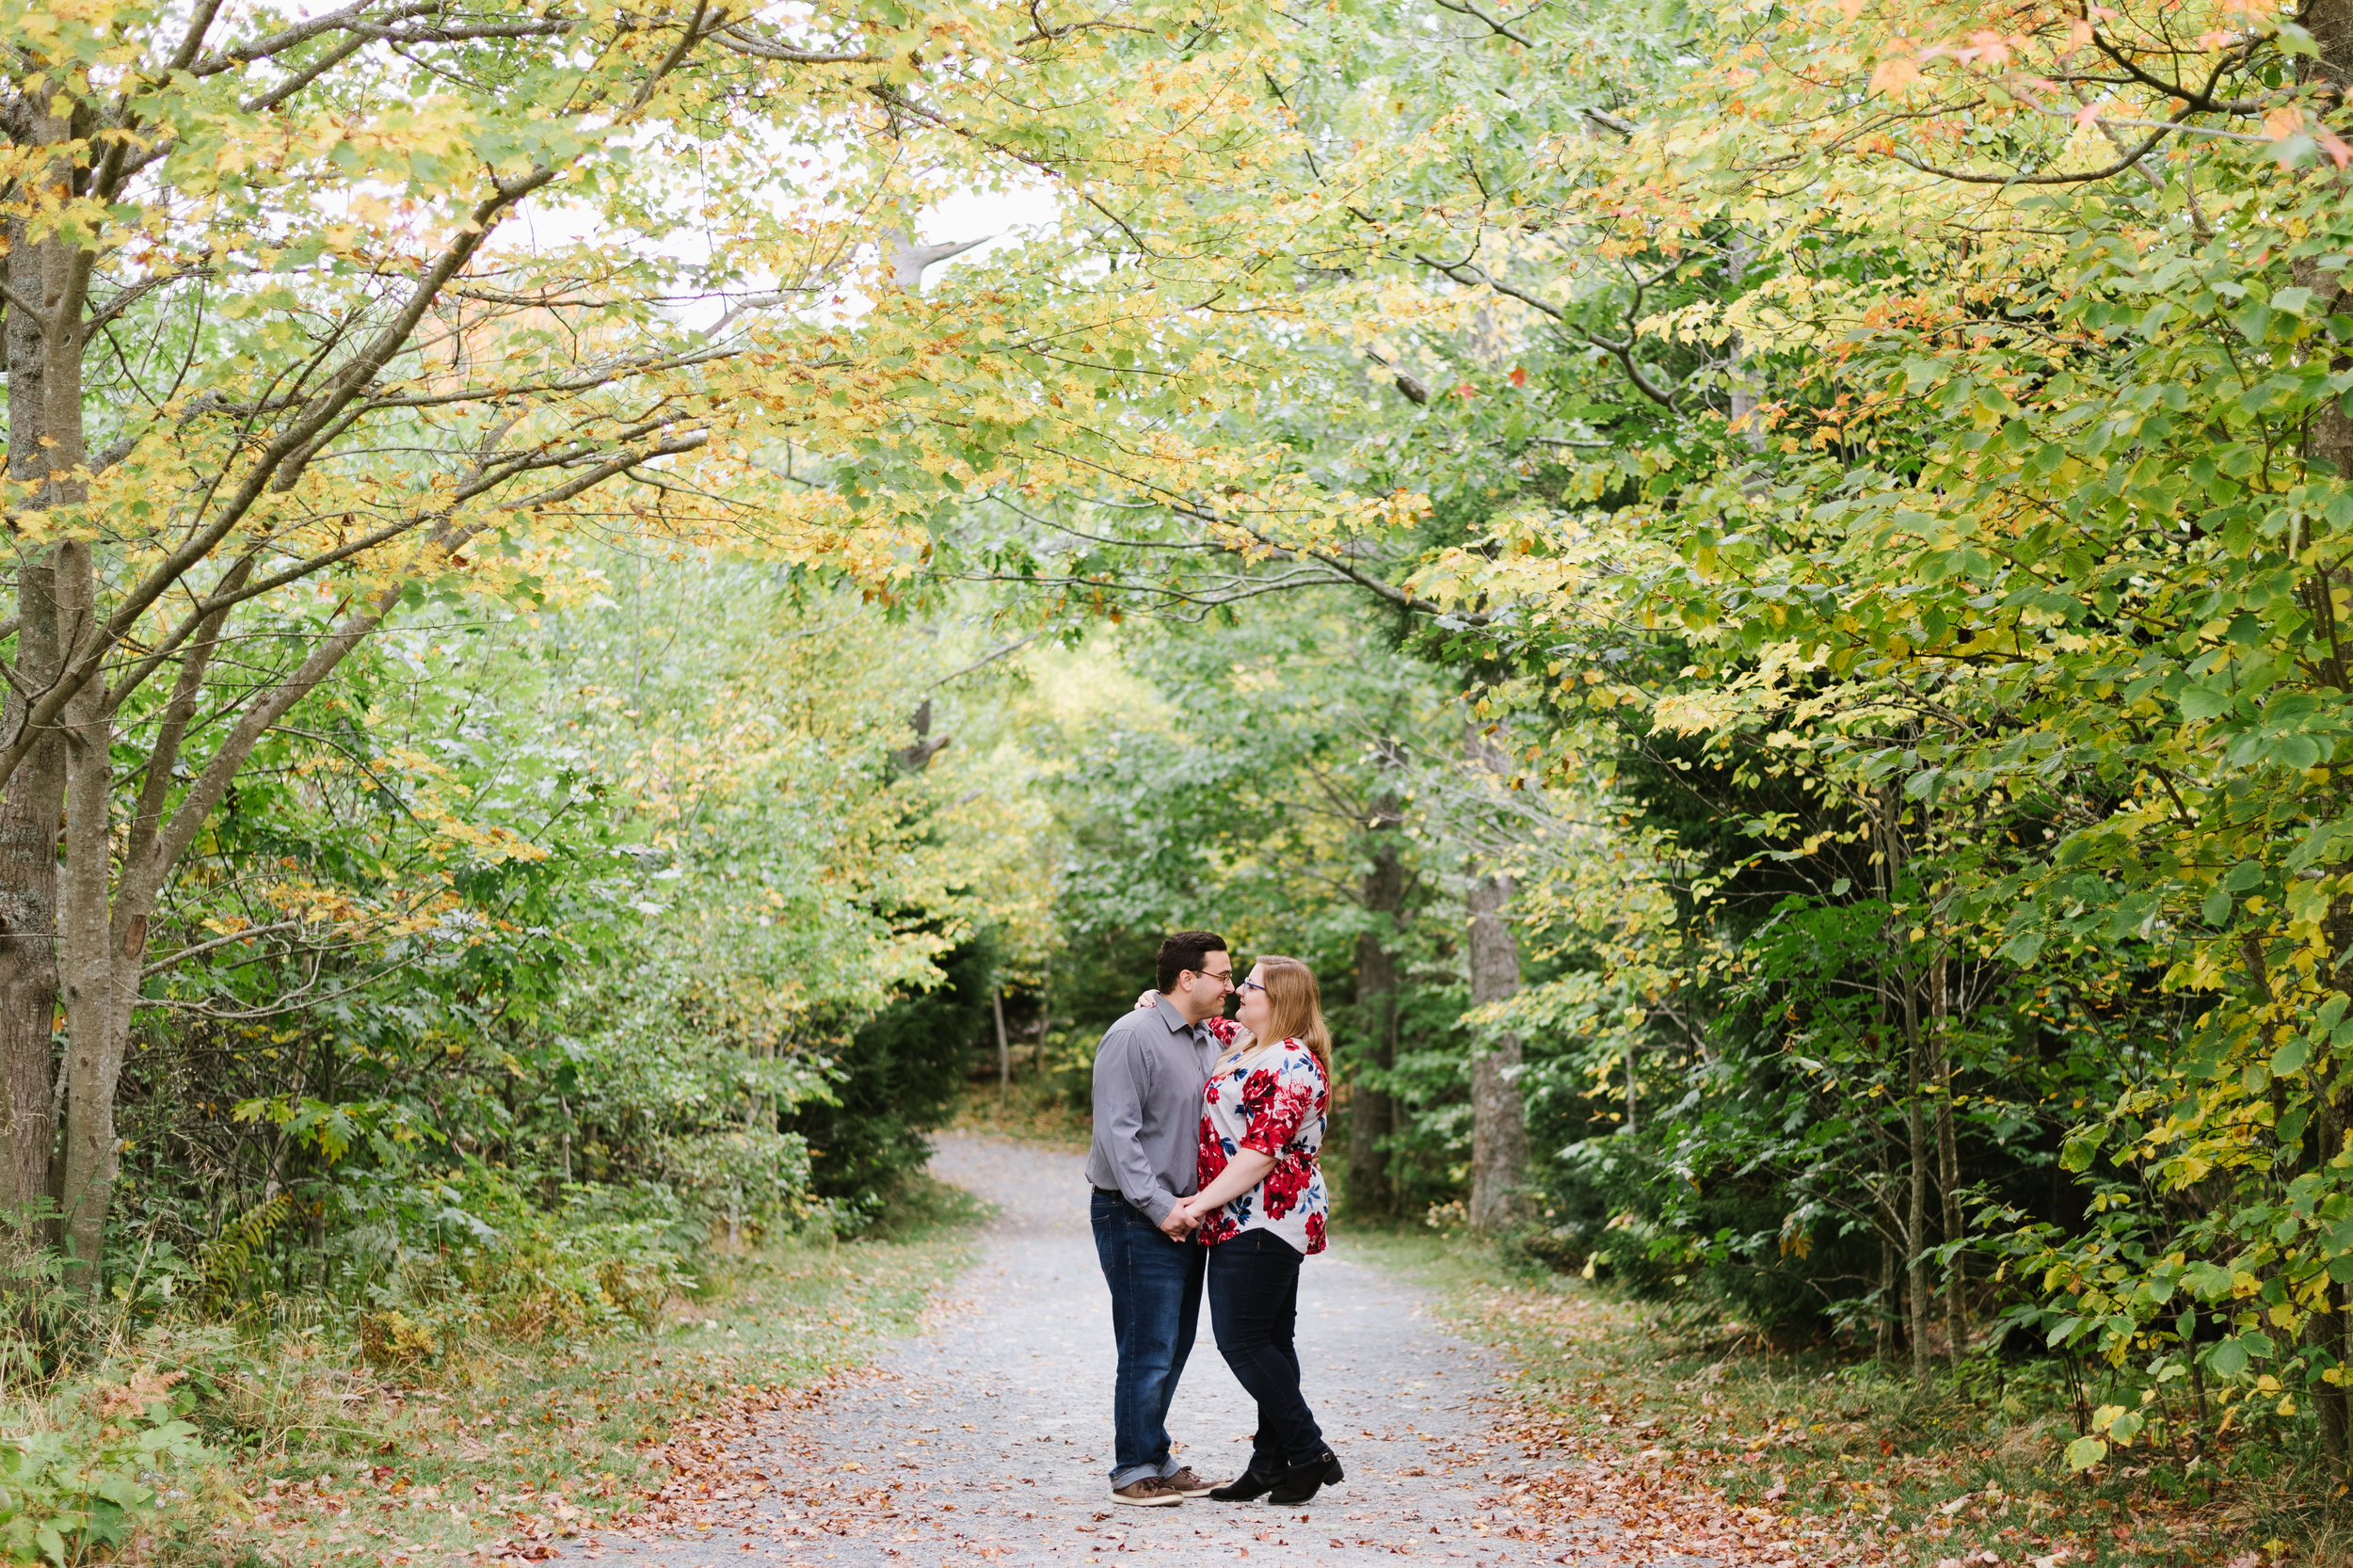 7 Reasons You Should Book An Engagement Session | Halifax Wedding Photographer